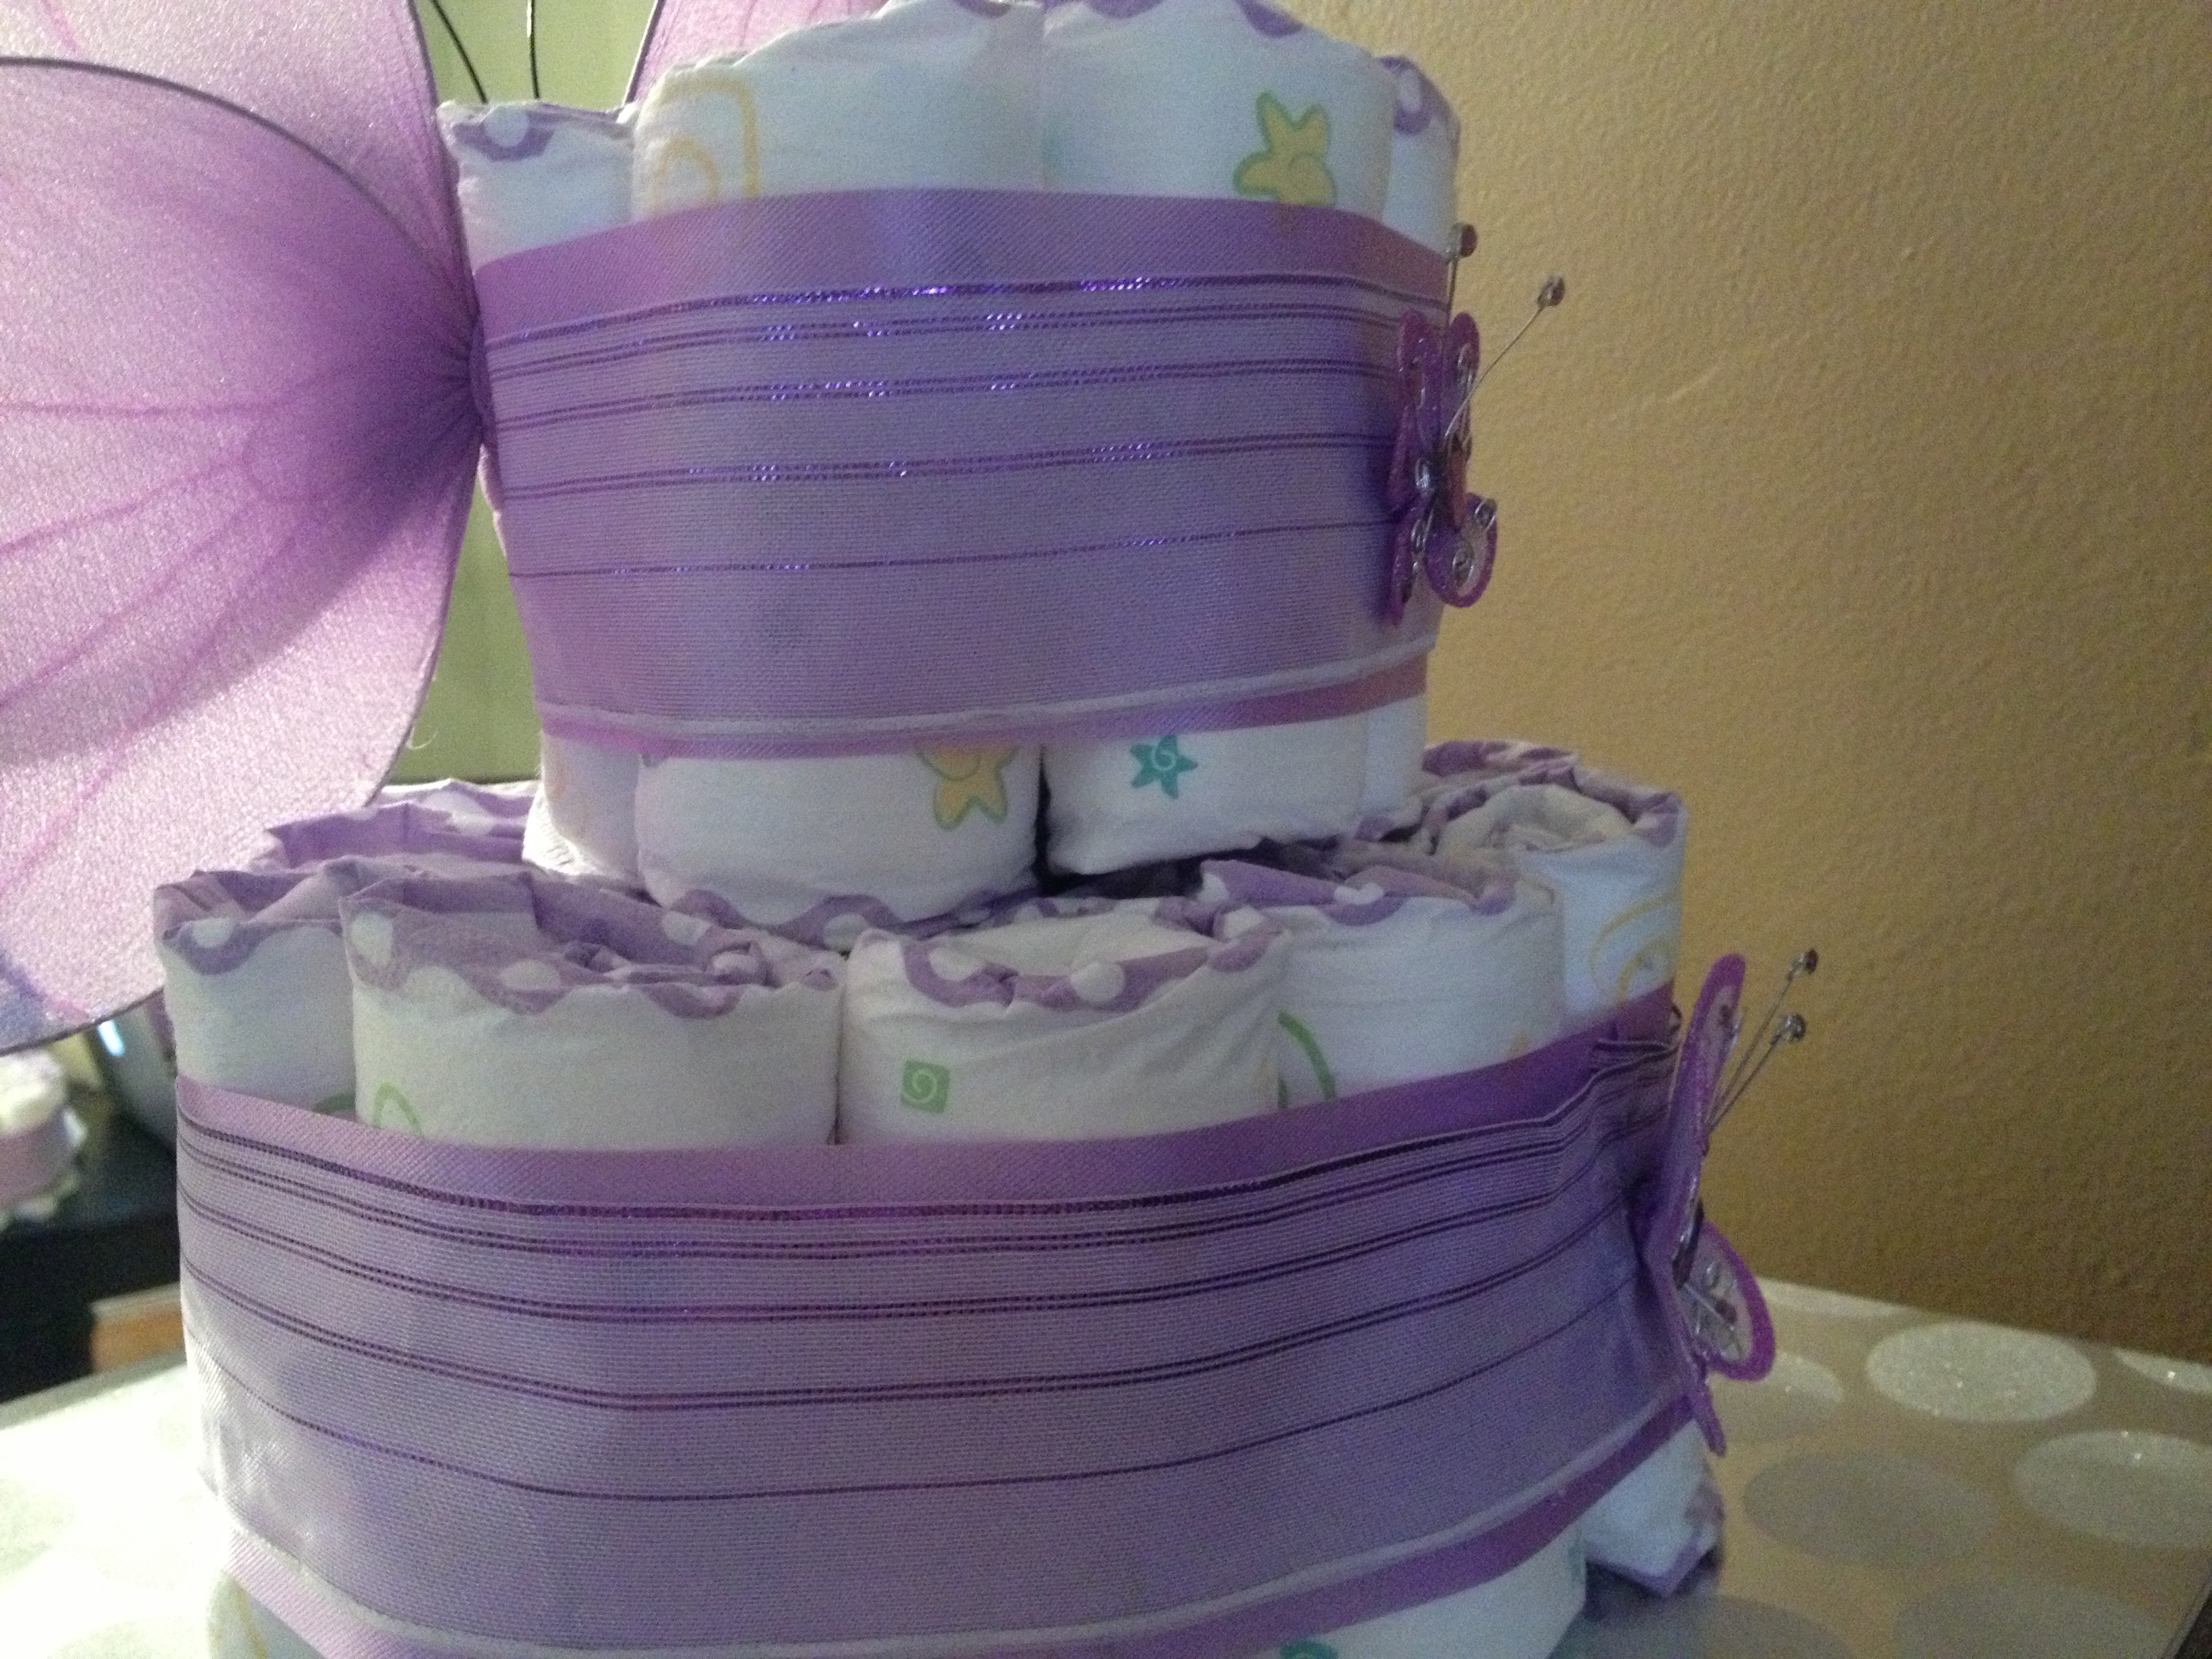 2 tier purple butterfly diaper cake from Baby Dreams on Storenvy